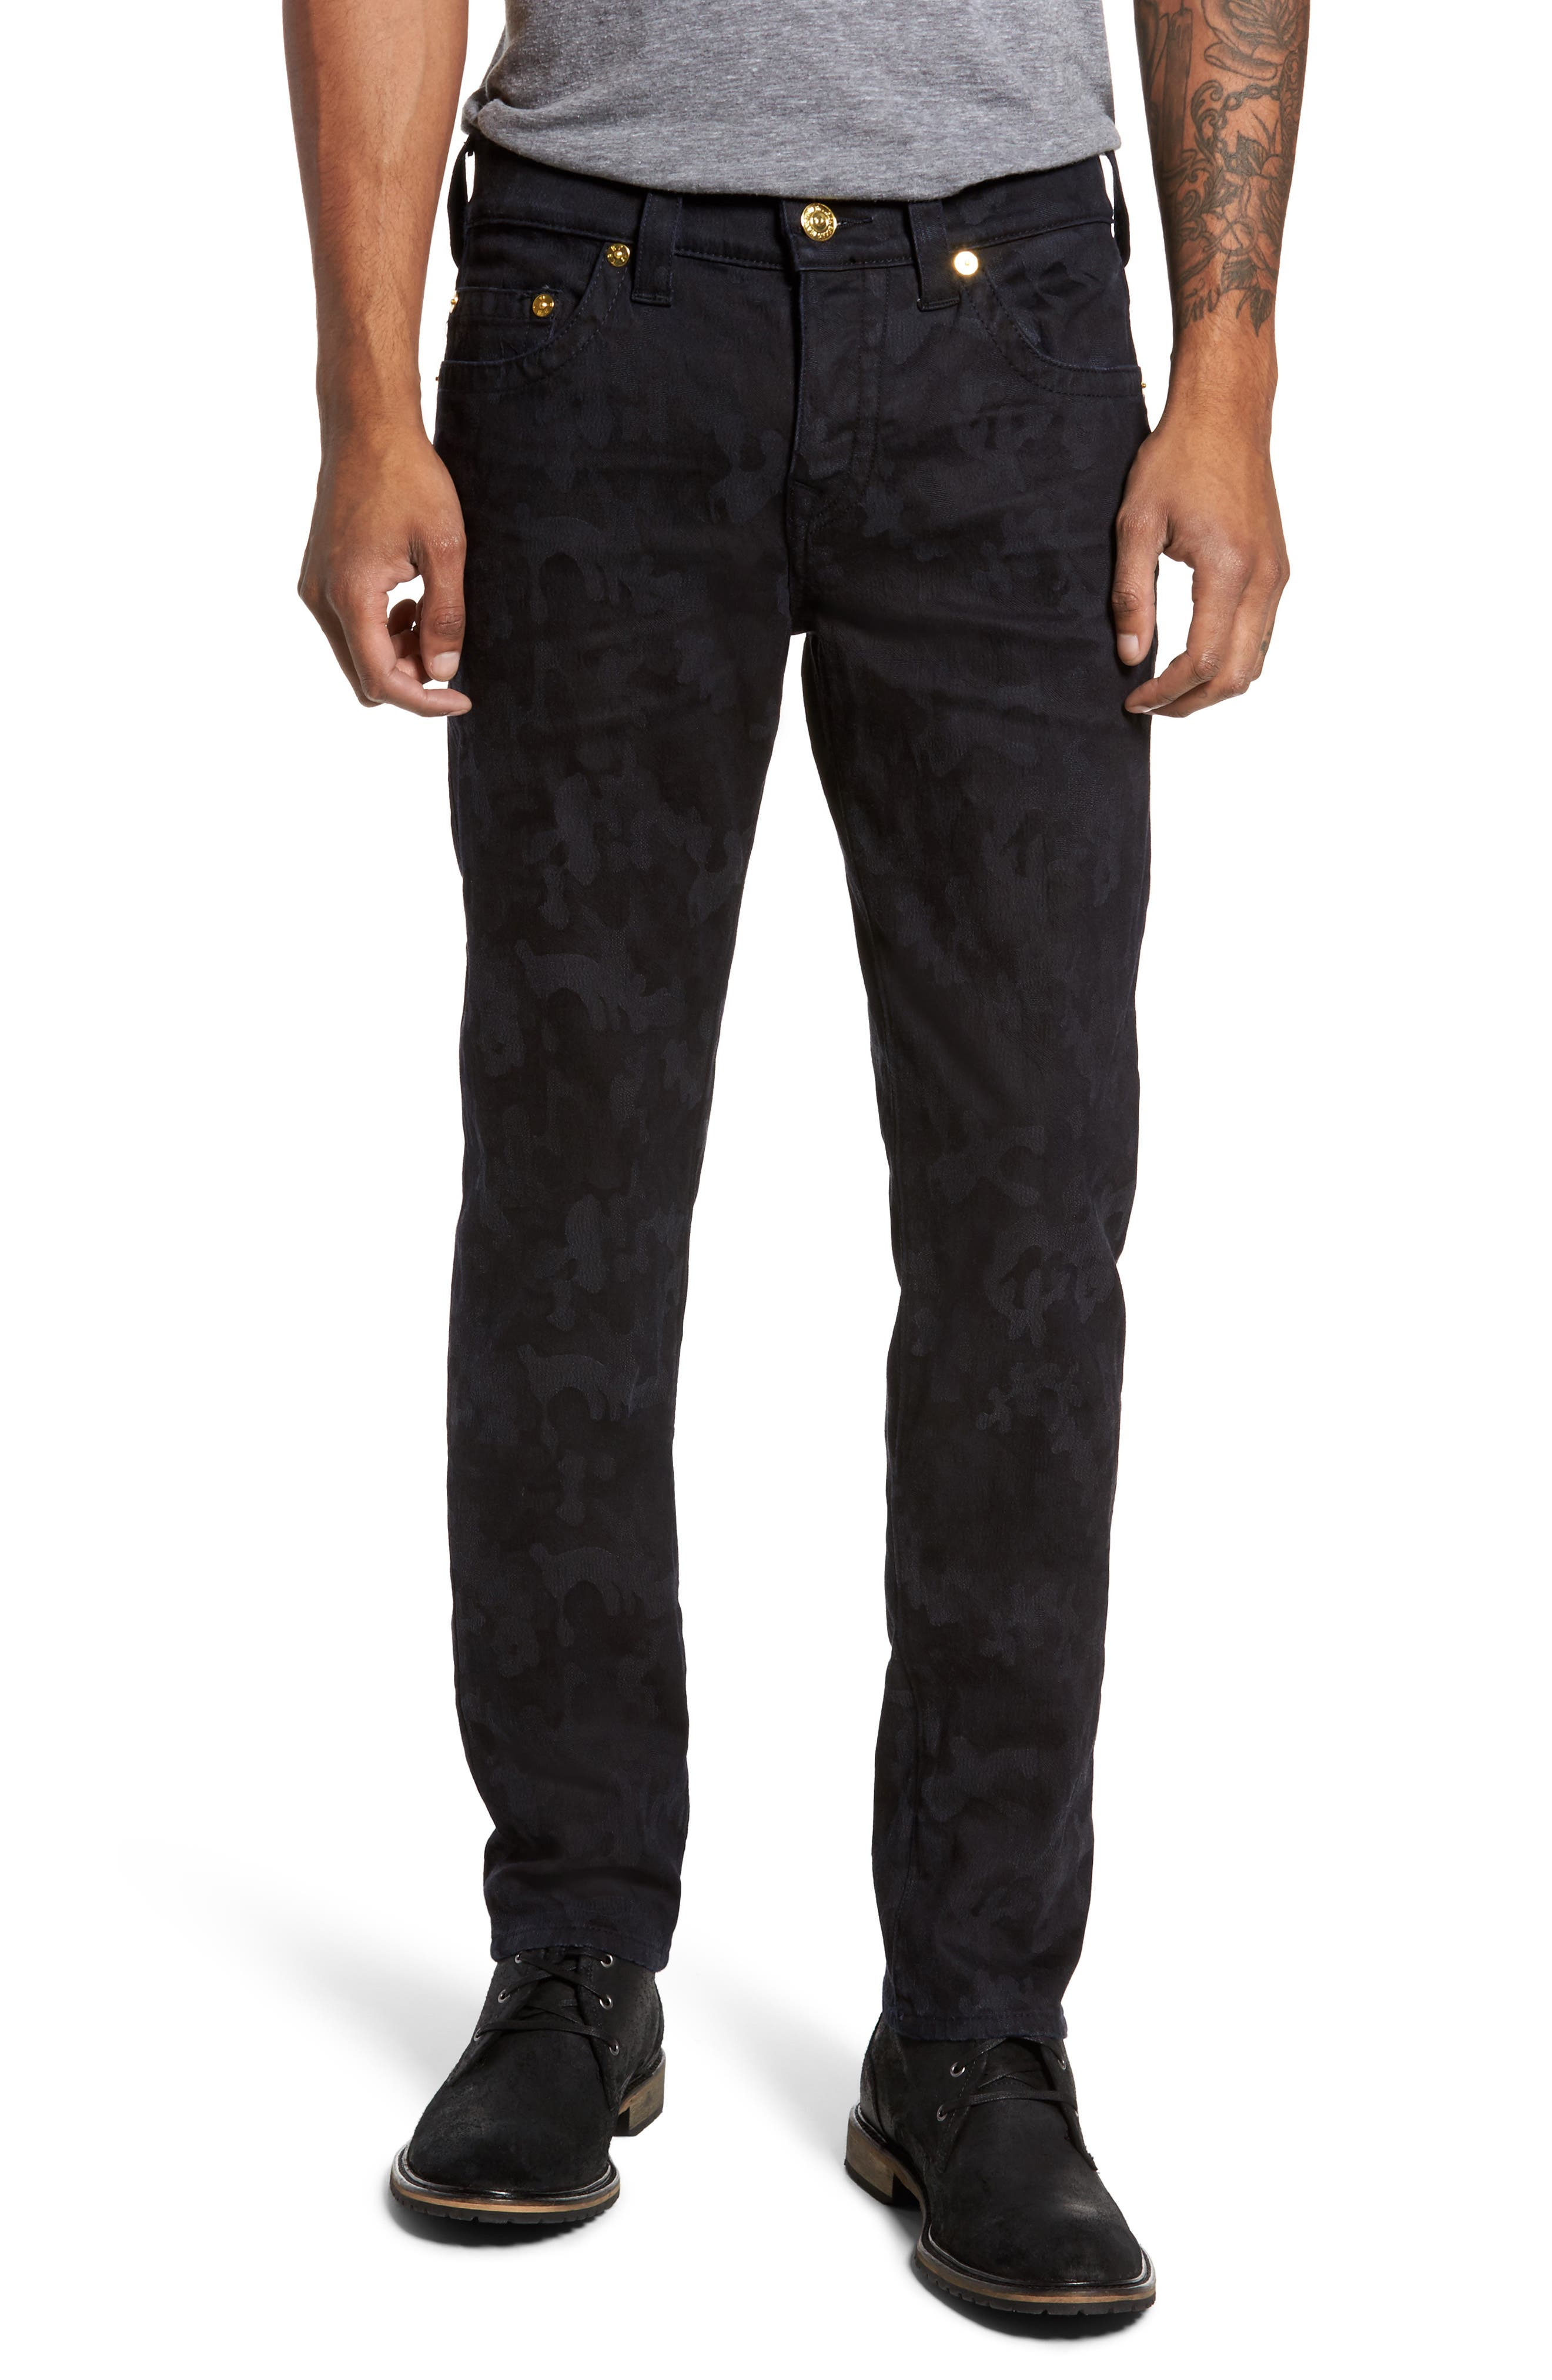 Rocco Skinny Fit Jeans,                         Main,                         color, Midnight Camo